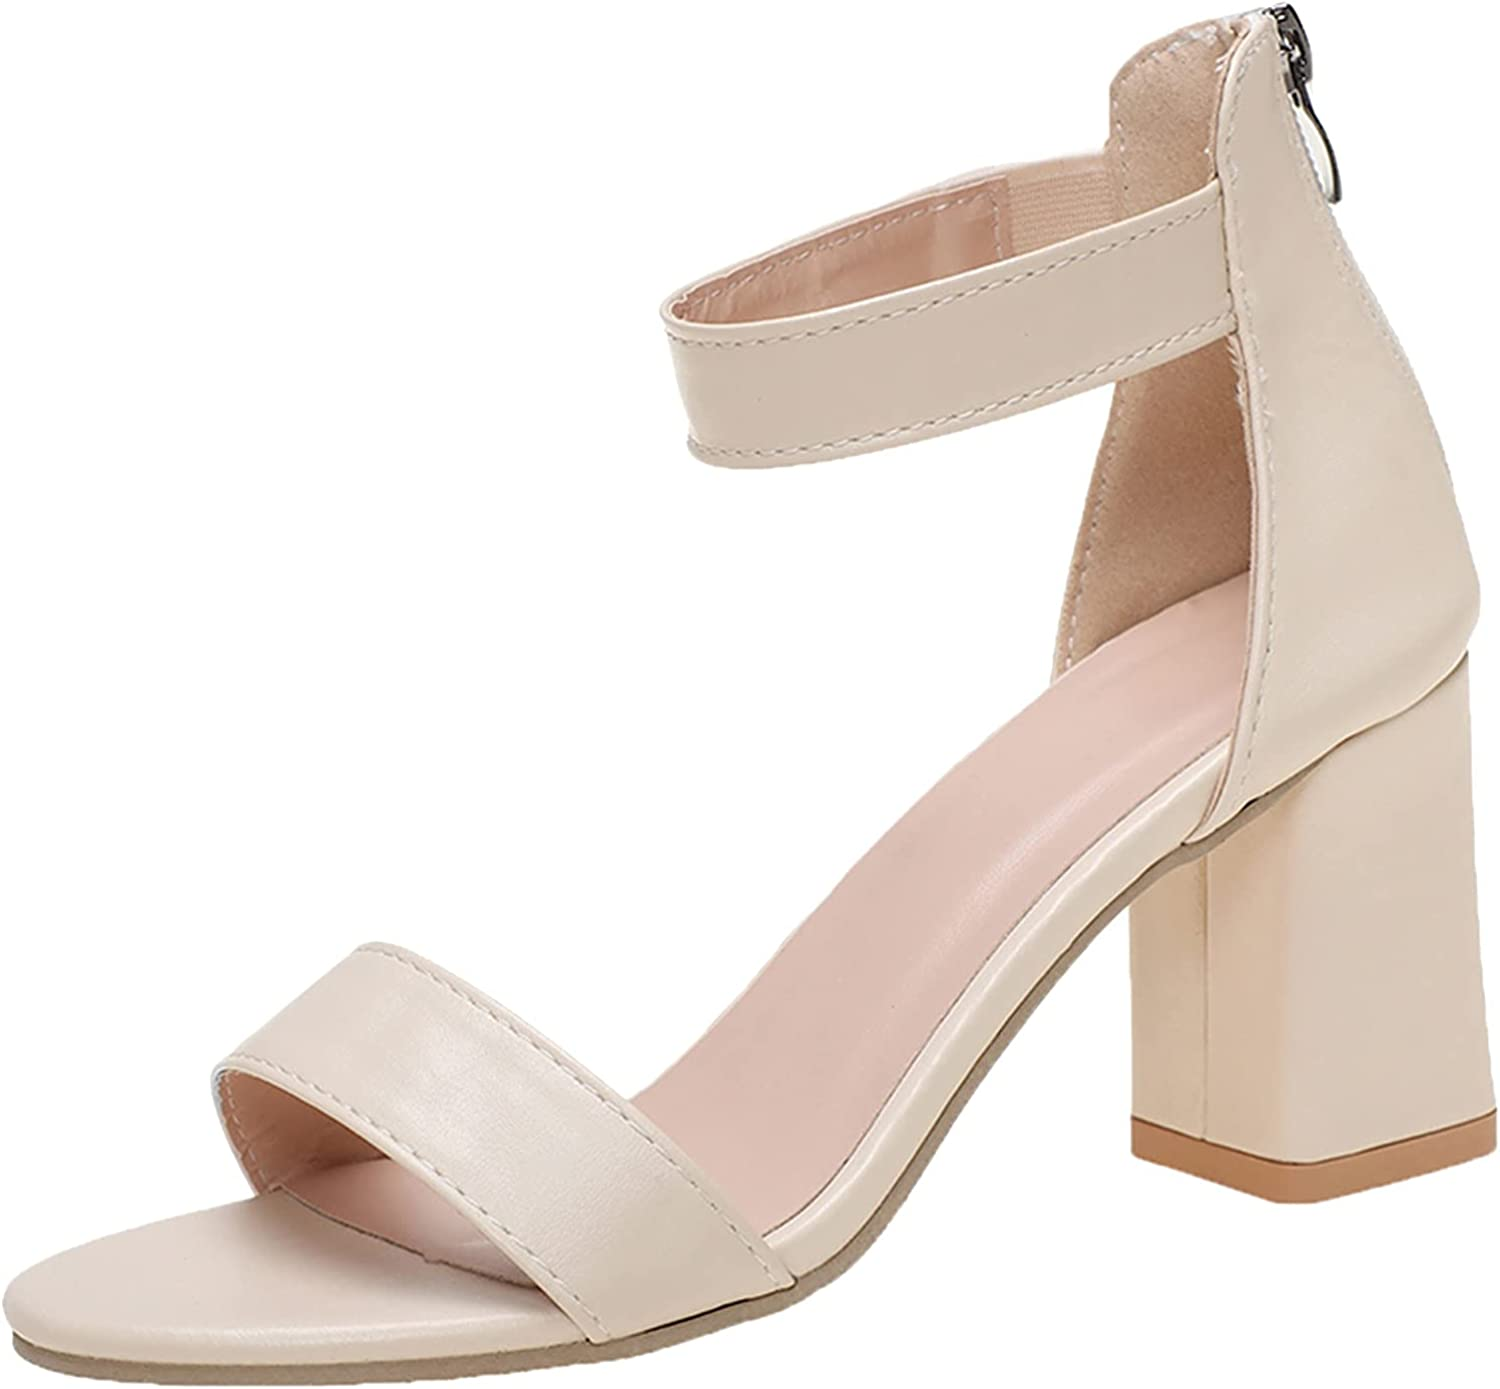 Women's Pumps Chunky High Heel Sandal Ankle Strap Block Open Toe Casual Shoes Breathable